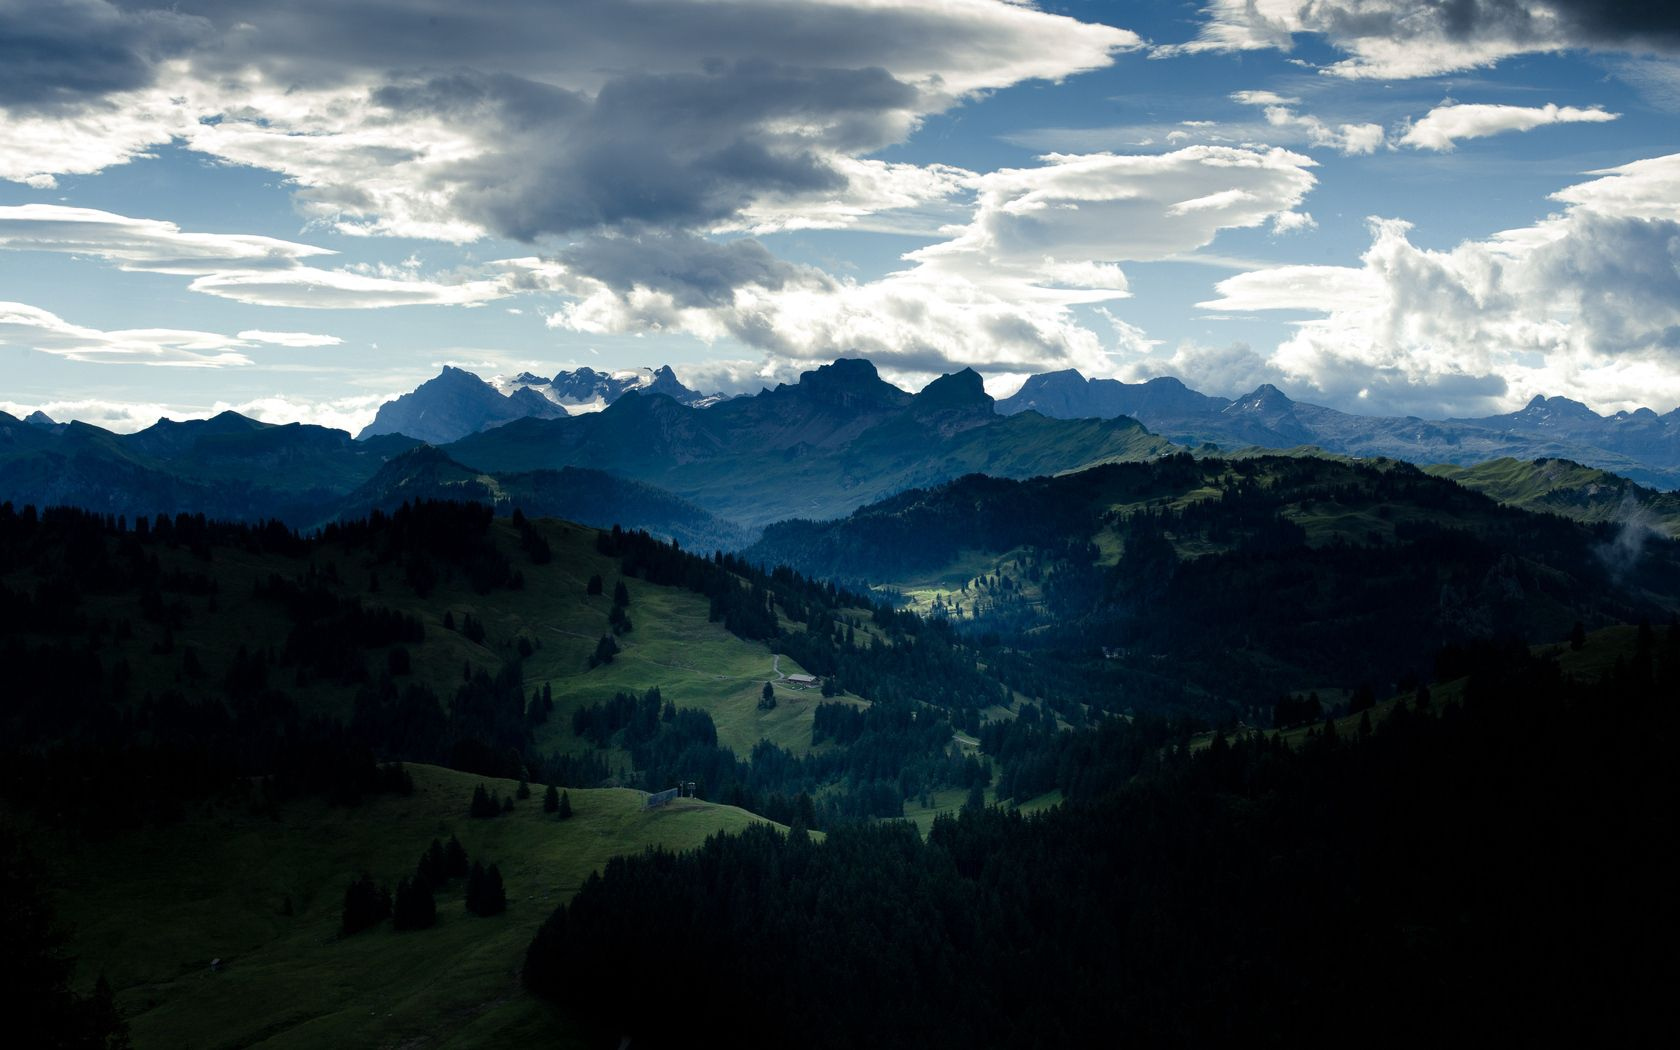 70244 download wallpaper Nature, Valley, Forest, Clouds, Mountains screensavers and pictures for free